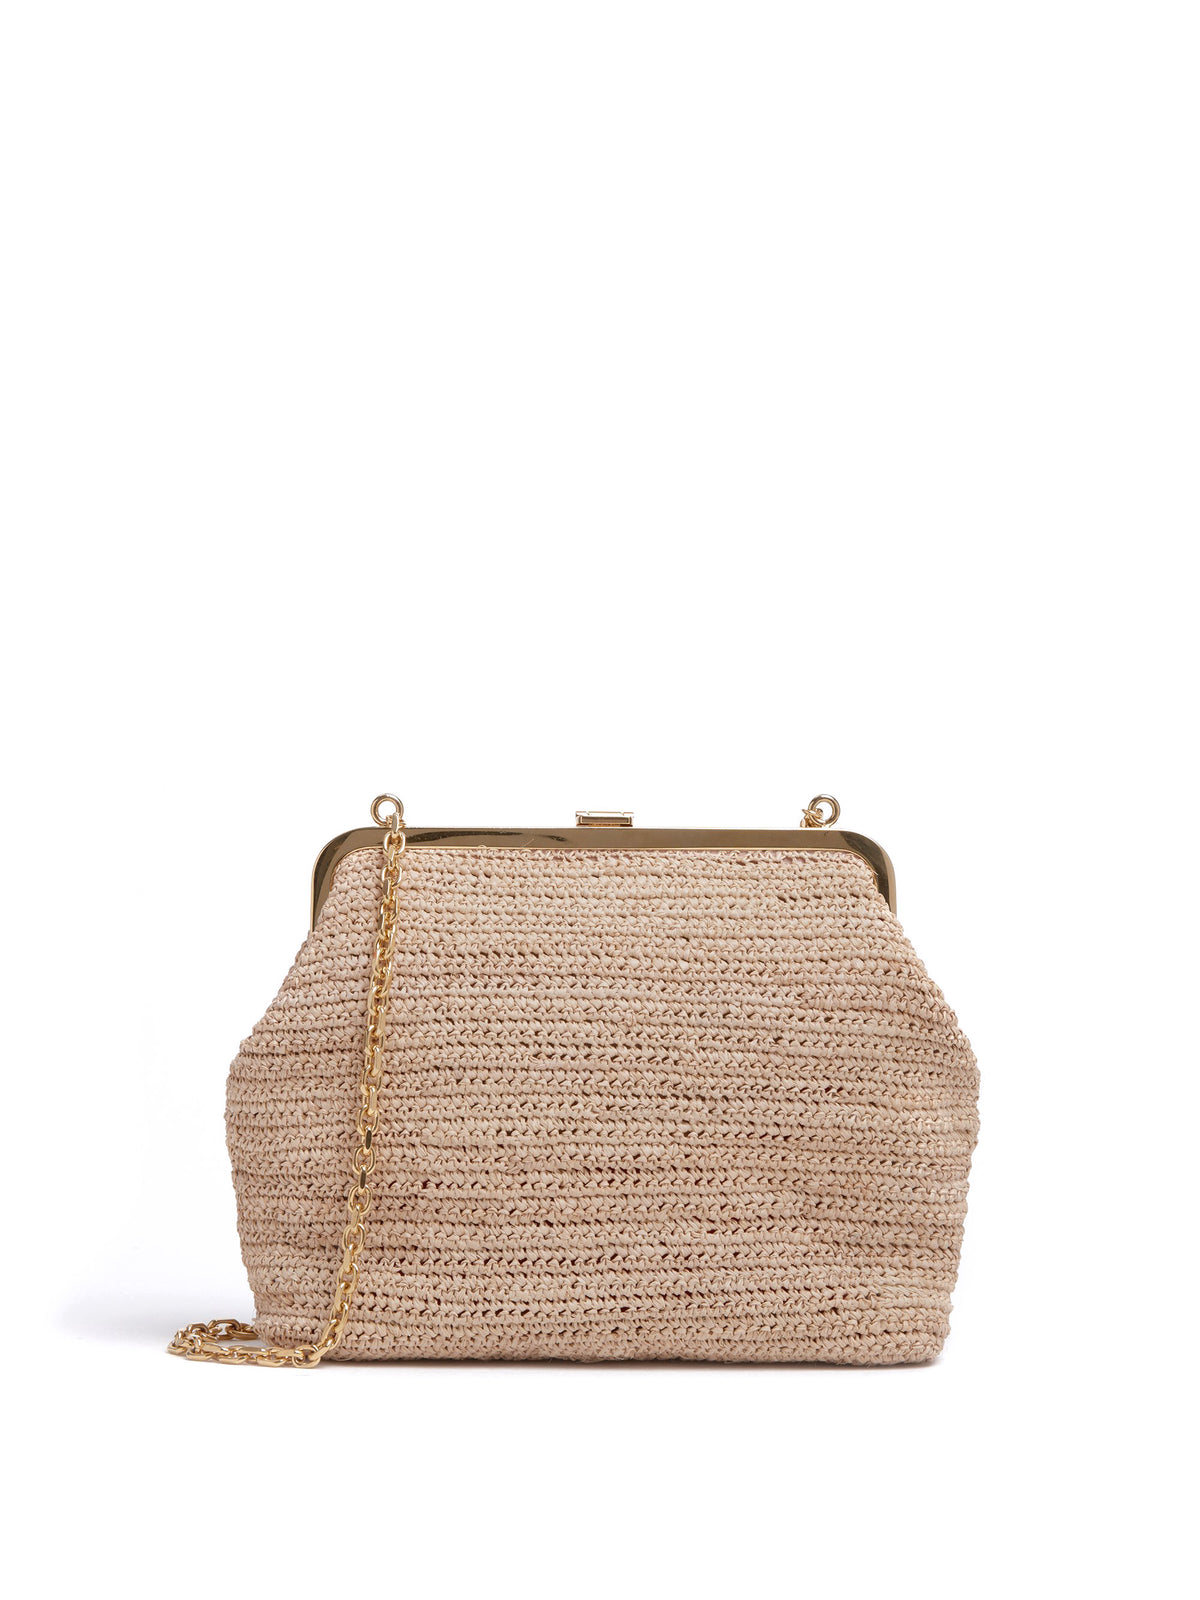 Mark Cross Susanna Raffia Pouch Bag Soft Calf Luggage / Natural Raffia Back